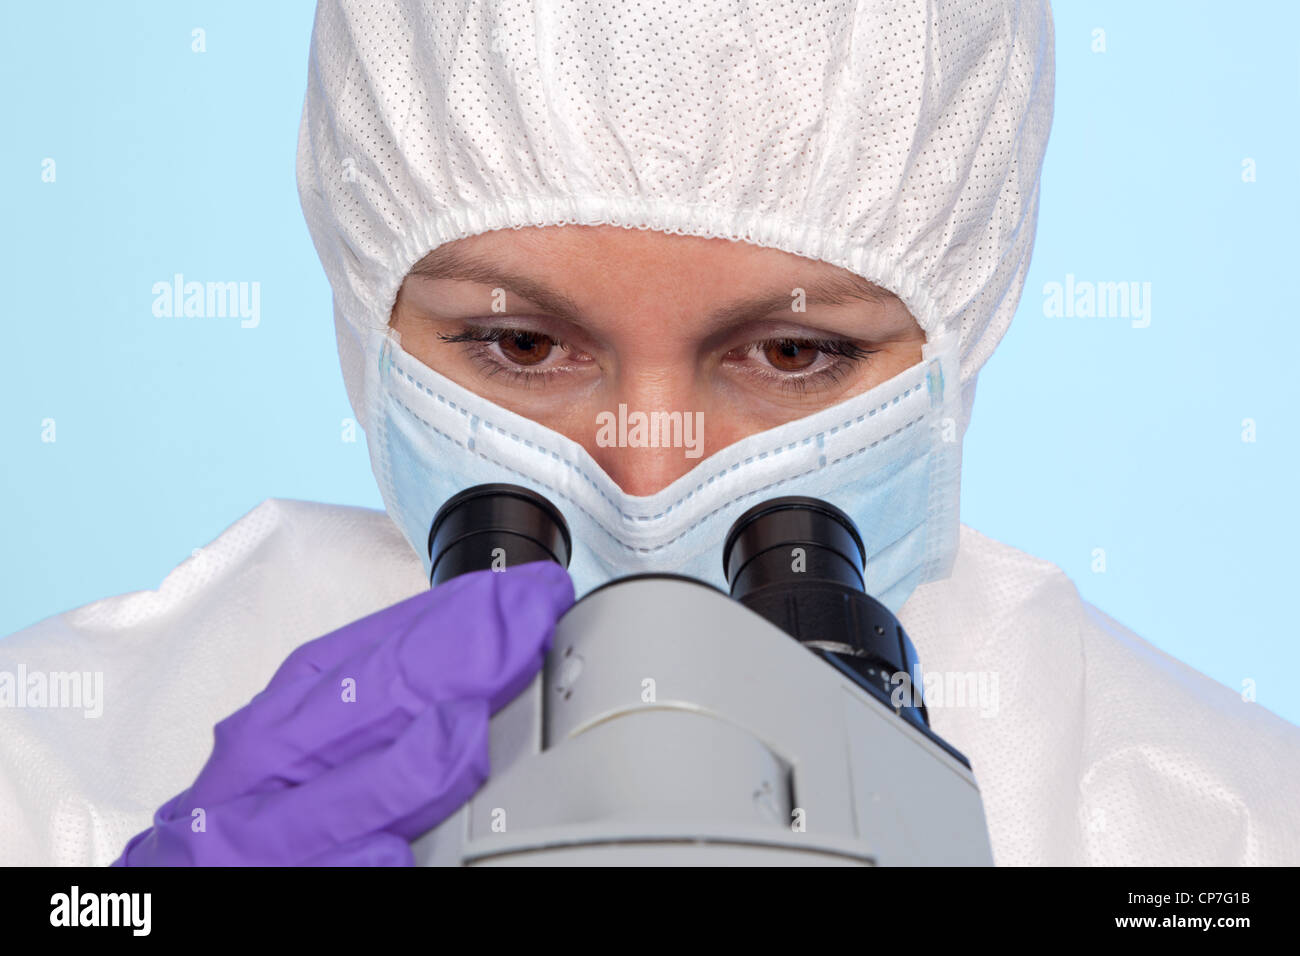 Photo of a biochemist looking through the eyepieces of a stereo optical laboratory microscope. - Stock Image